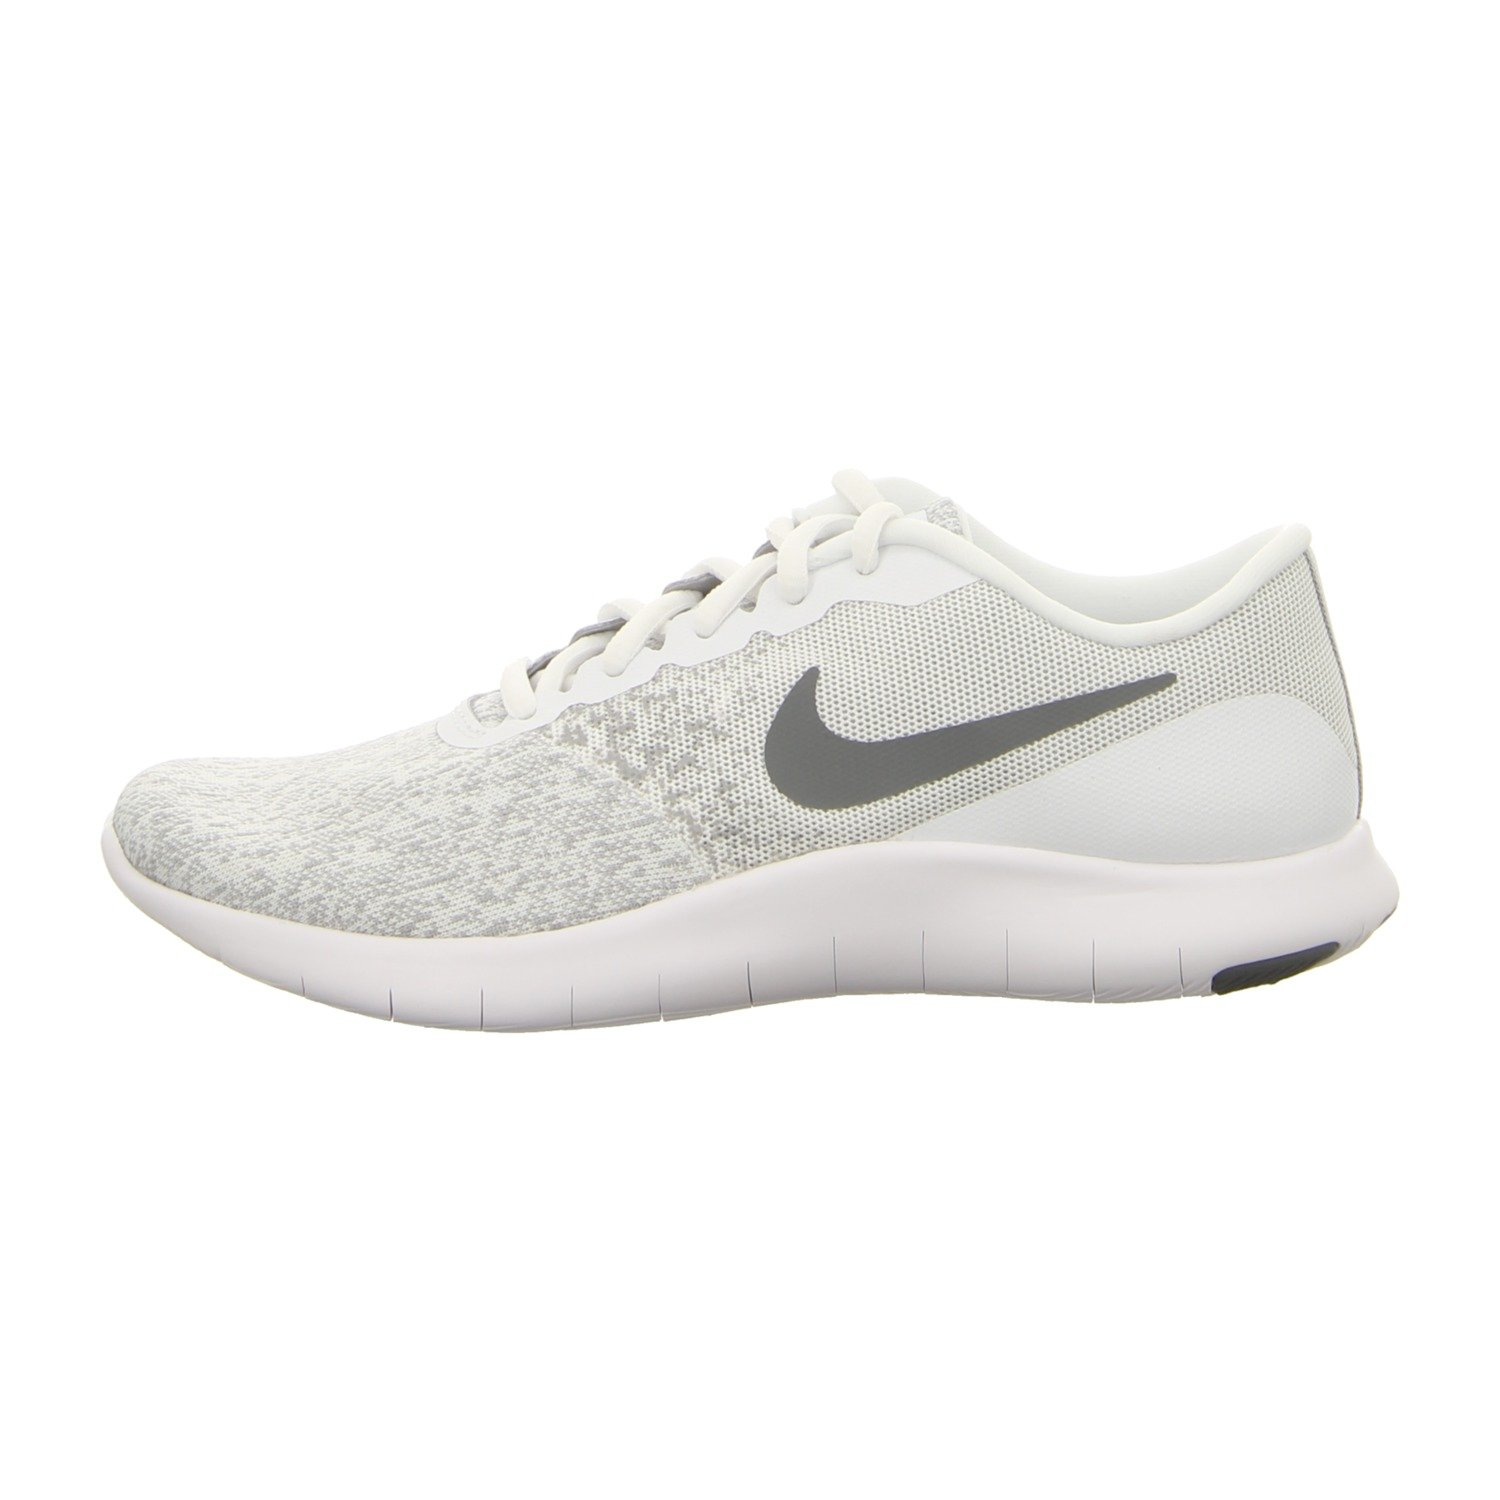 a30abee9c6b2c Nike Women's Flex Contact Running Shoe White/Cool Grey-Metallic Silver Size  8